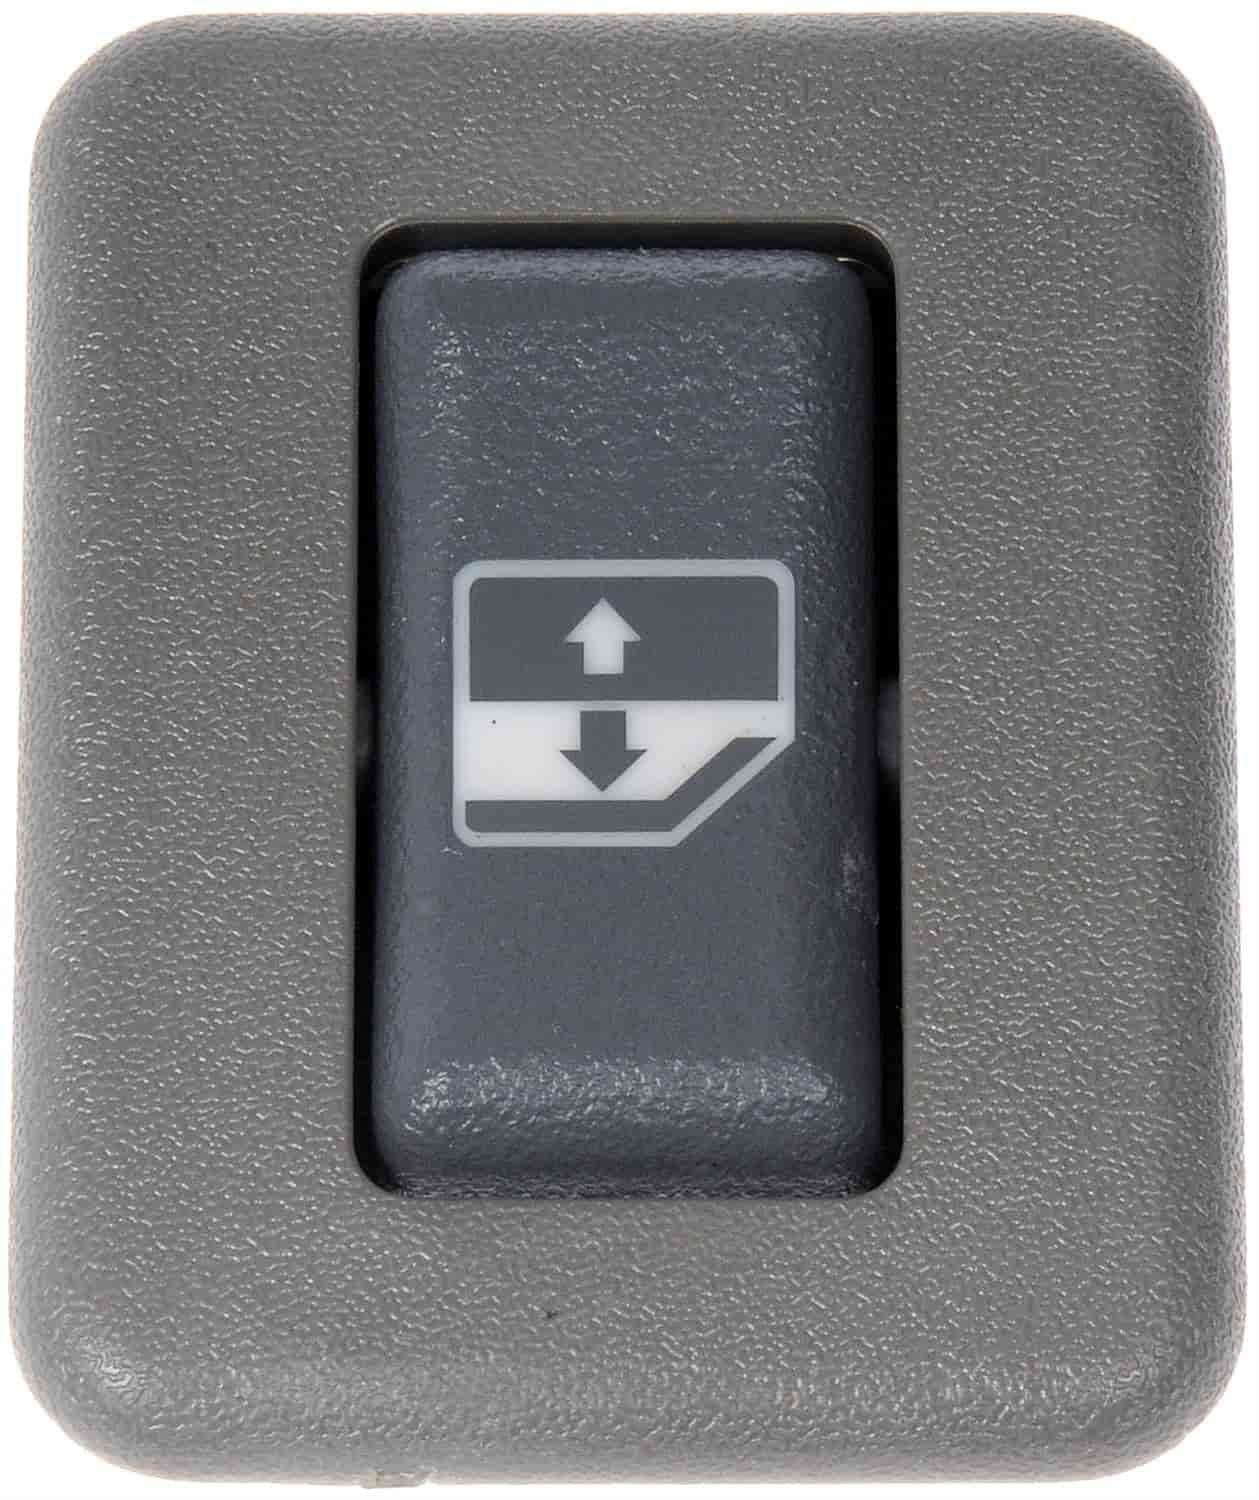 Dorman Products 901-099